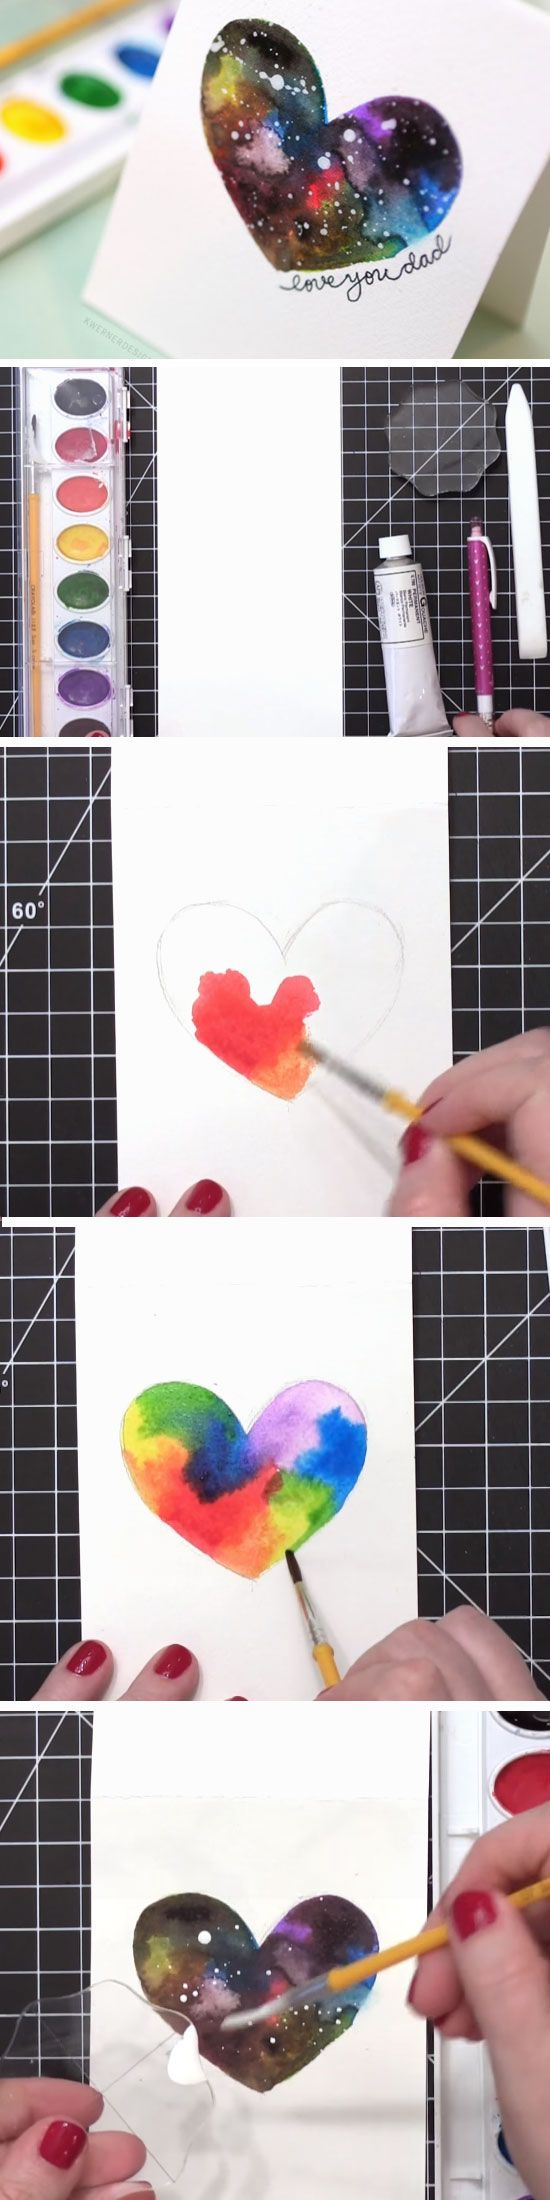 easy homemade fathers day cards to make diy birthday cards diy